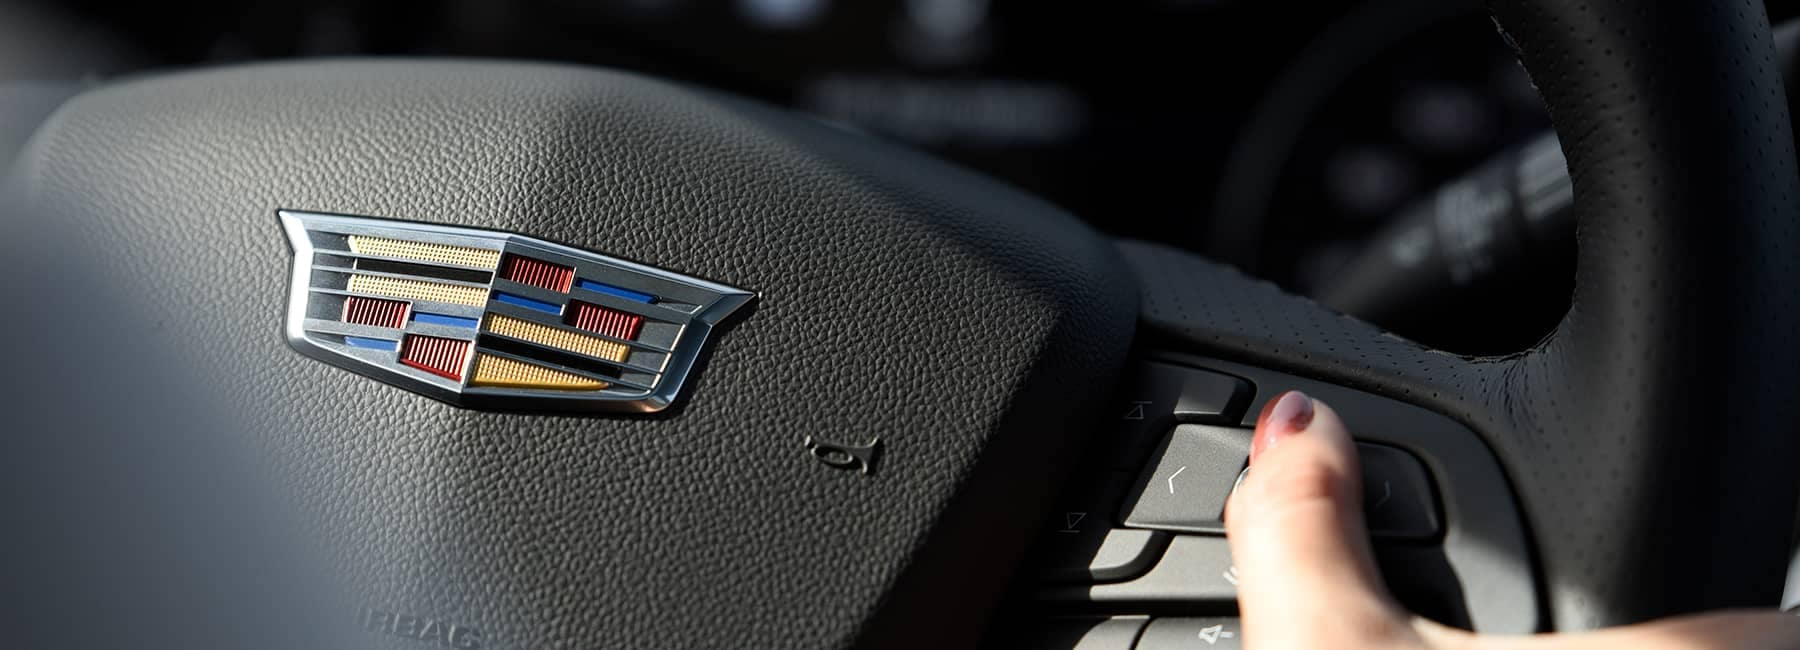 A close up photo of the Cadillac emblem on a steering wheel